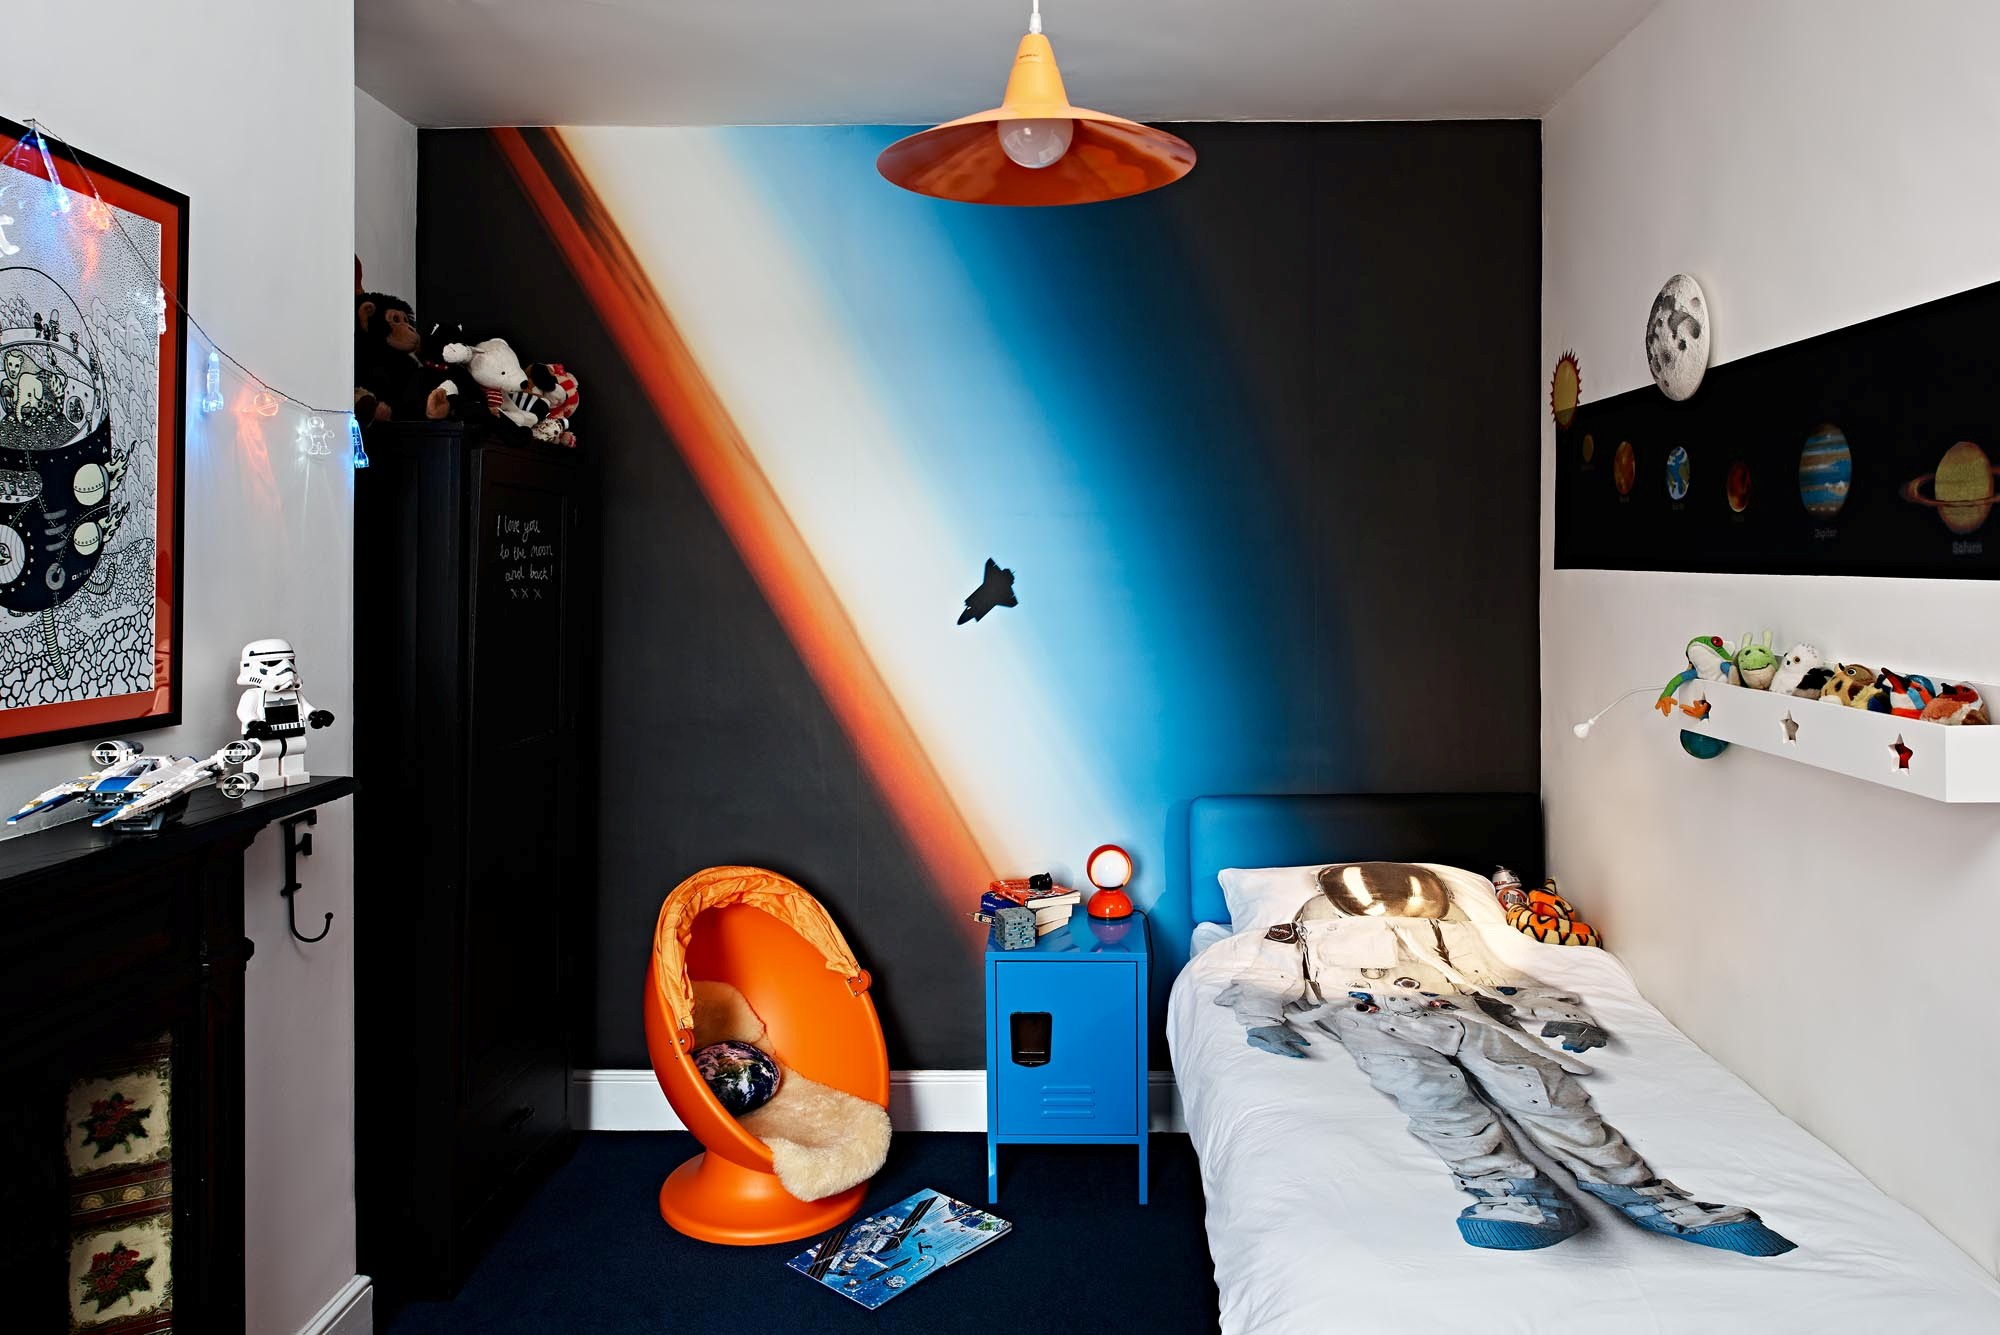 space themed hotel room near me